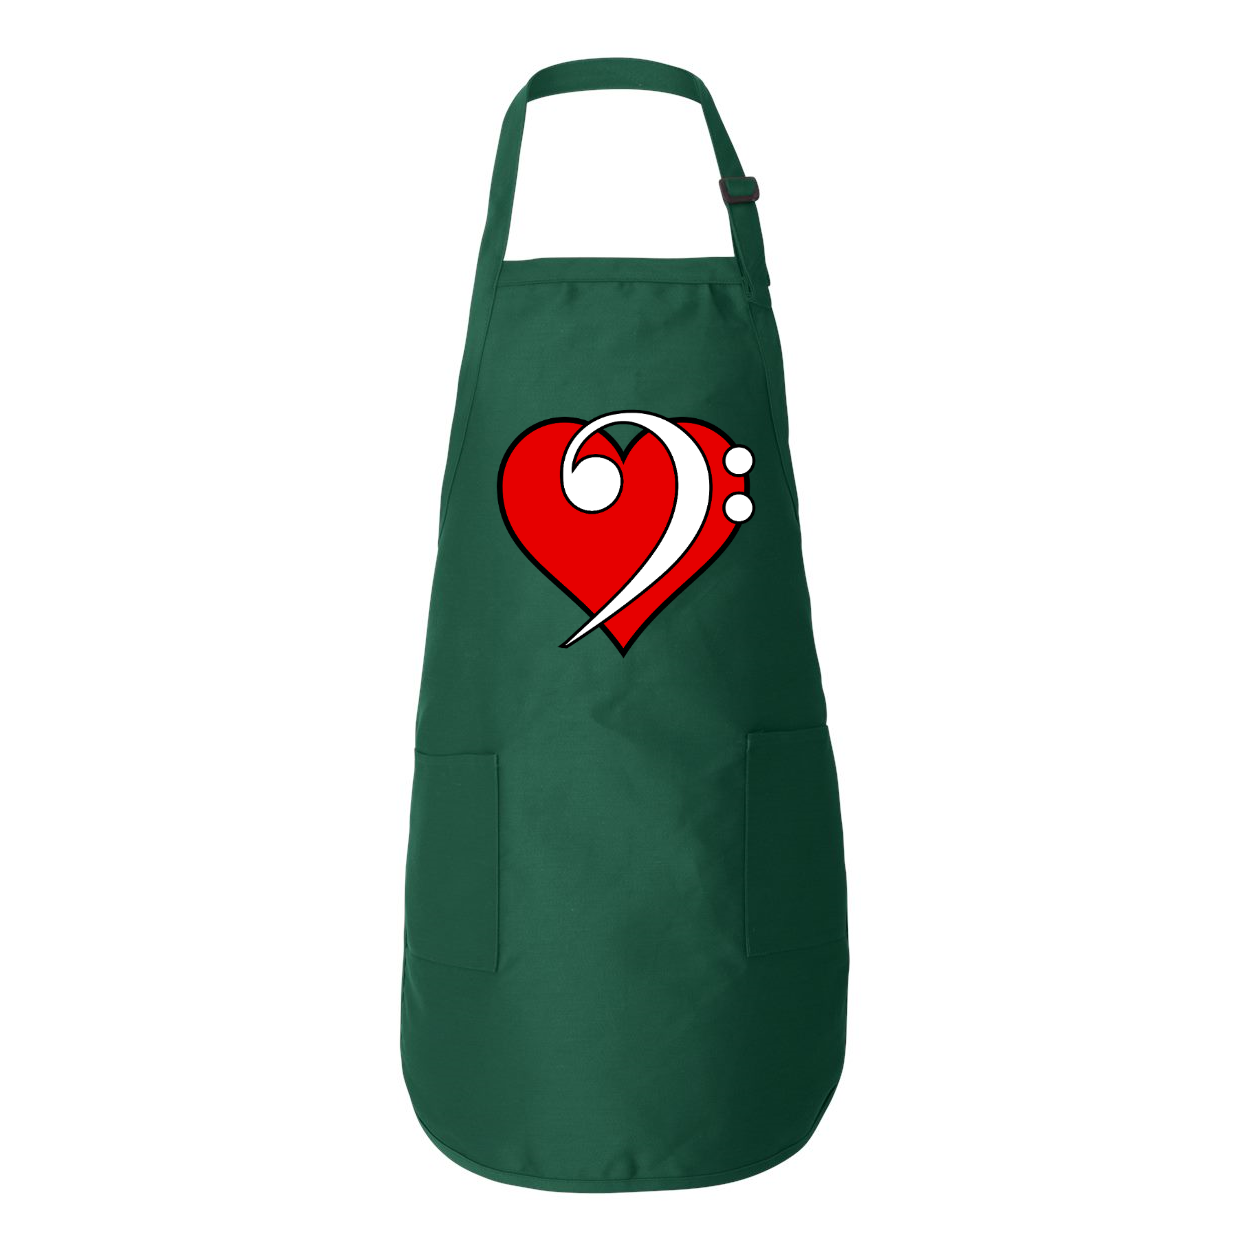 BASS LOVE Full-Length Apron with Pockets - Lathon Bass Wear